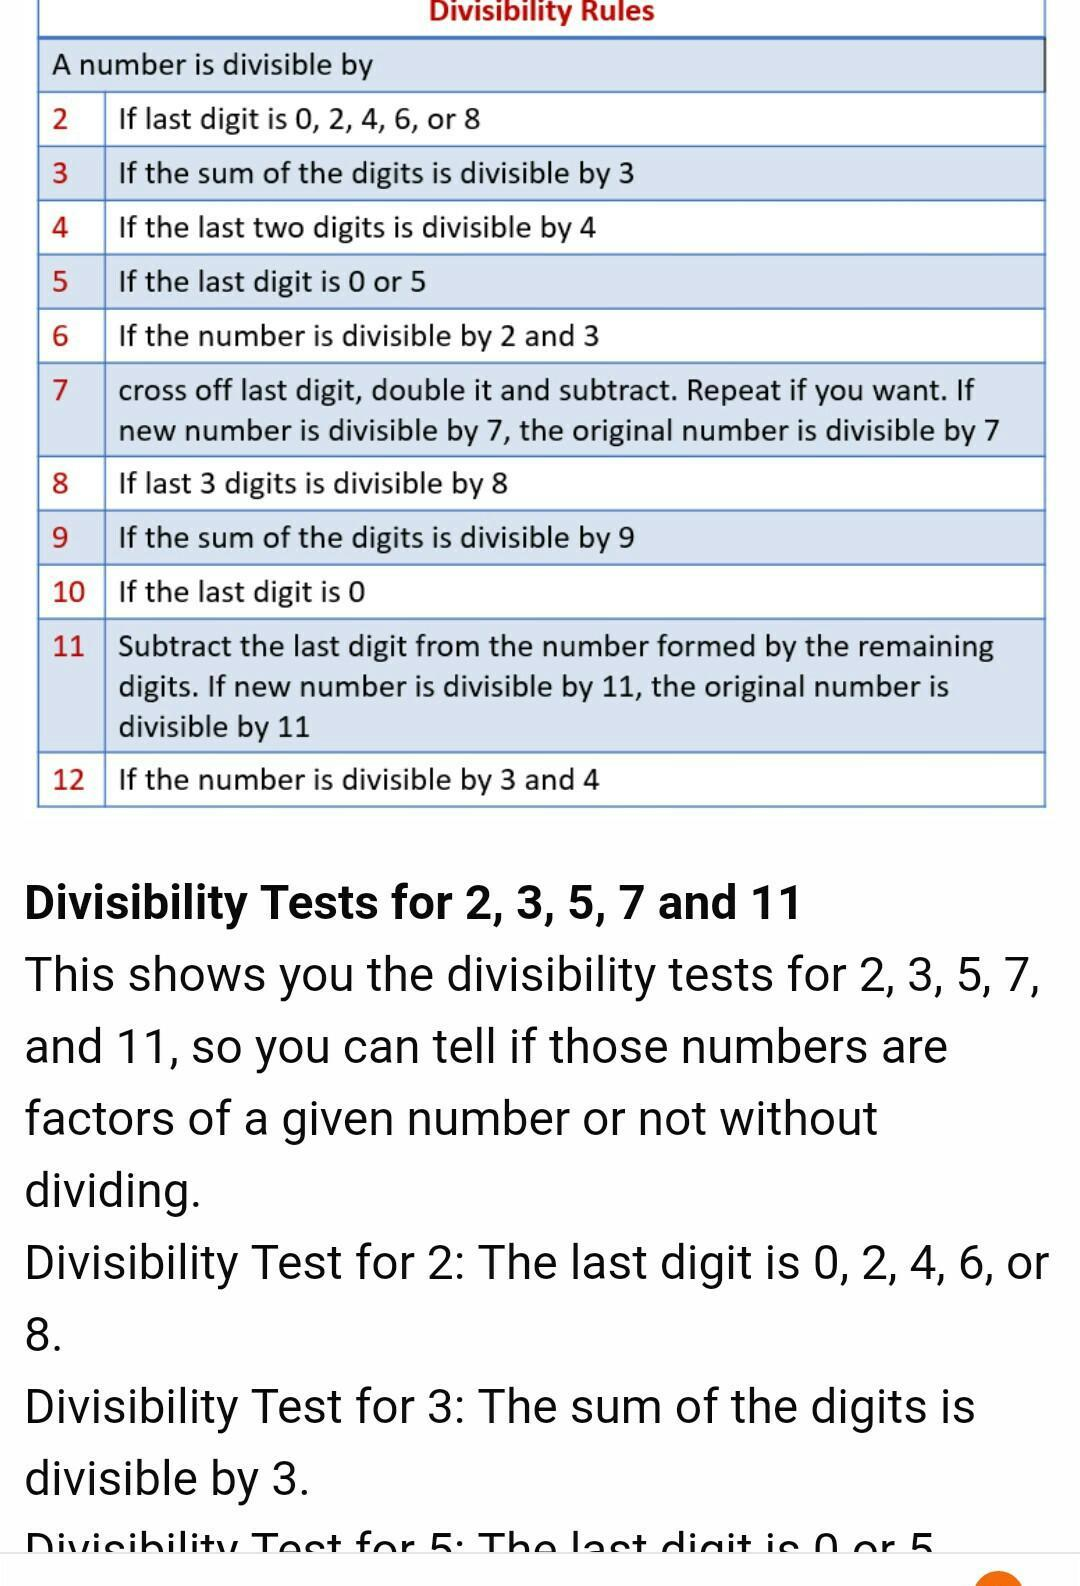 What Is The Divisibility Test Of 2 3 4 5 6 7 8 9 10 11